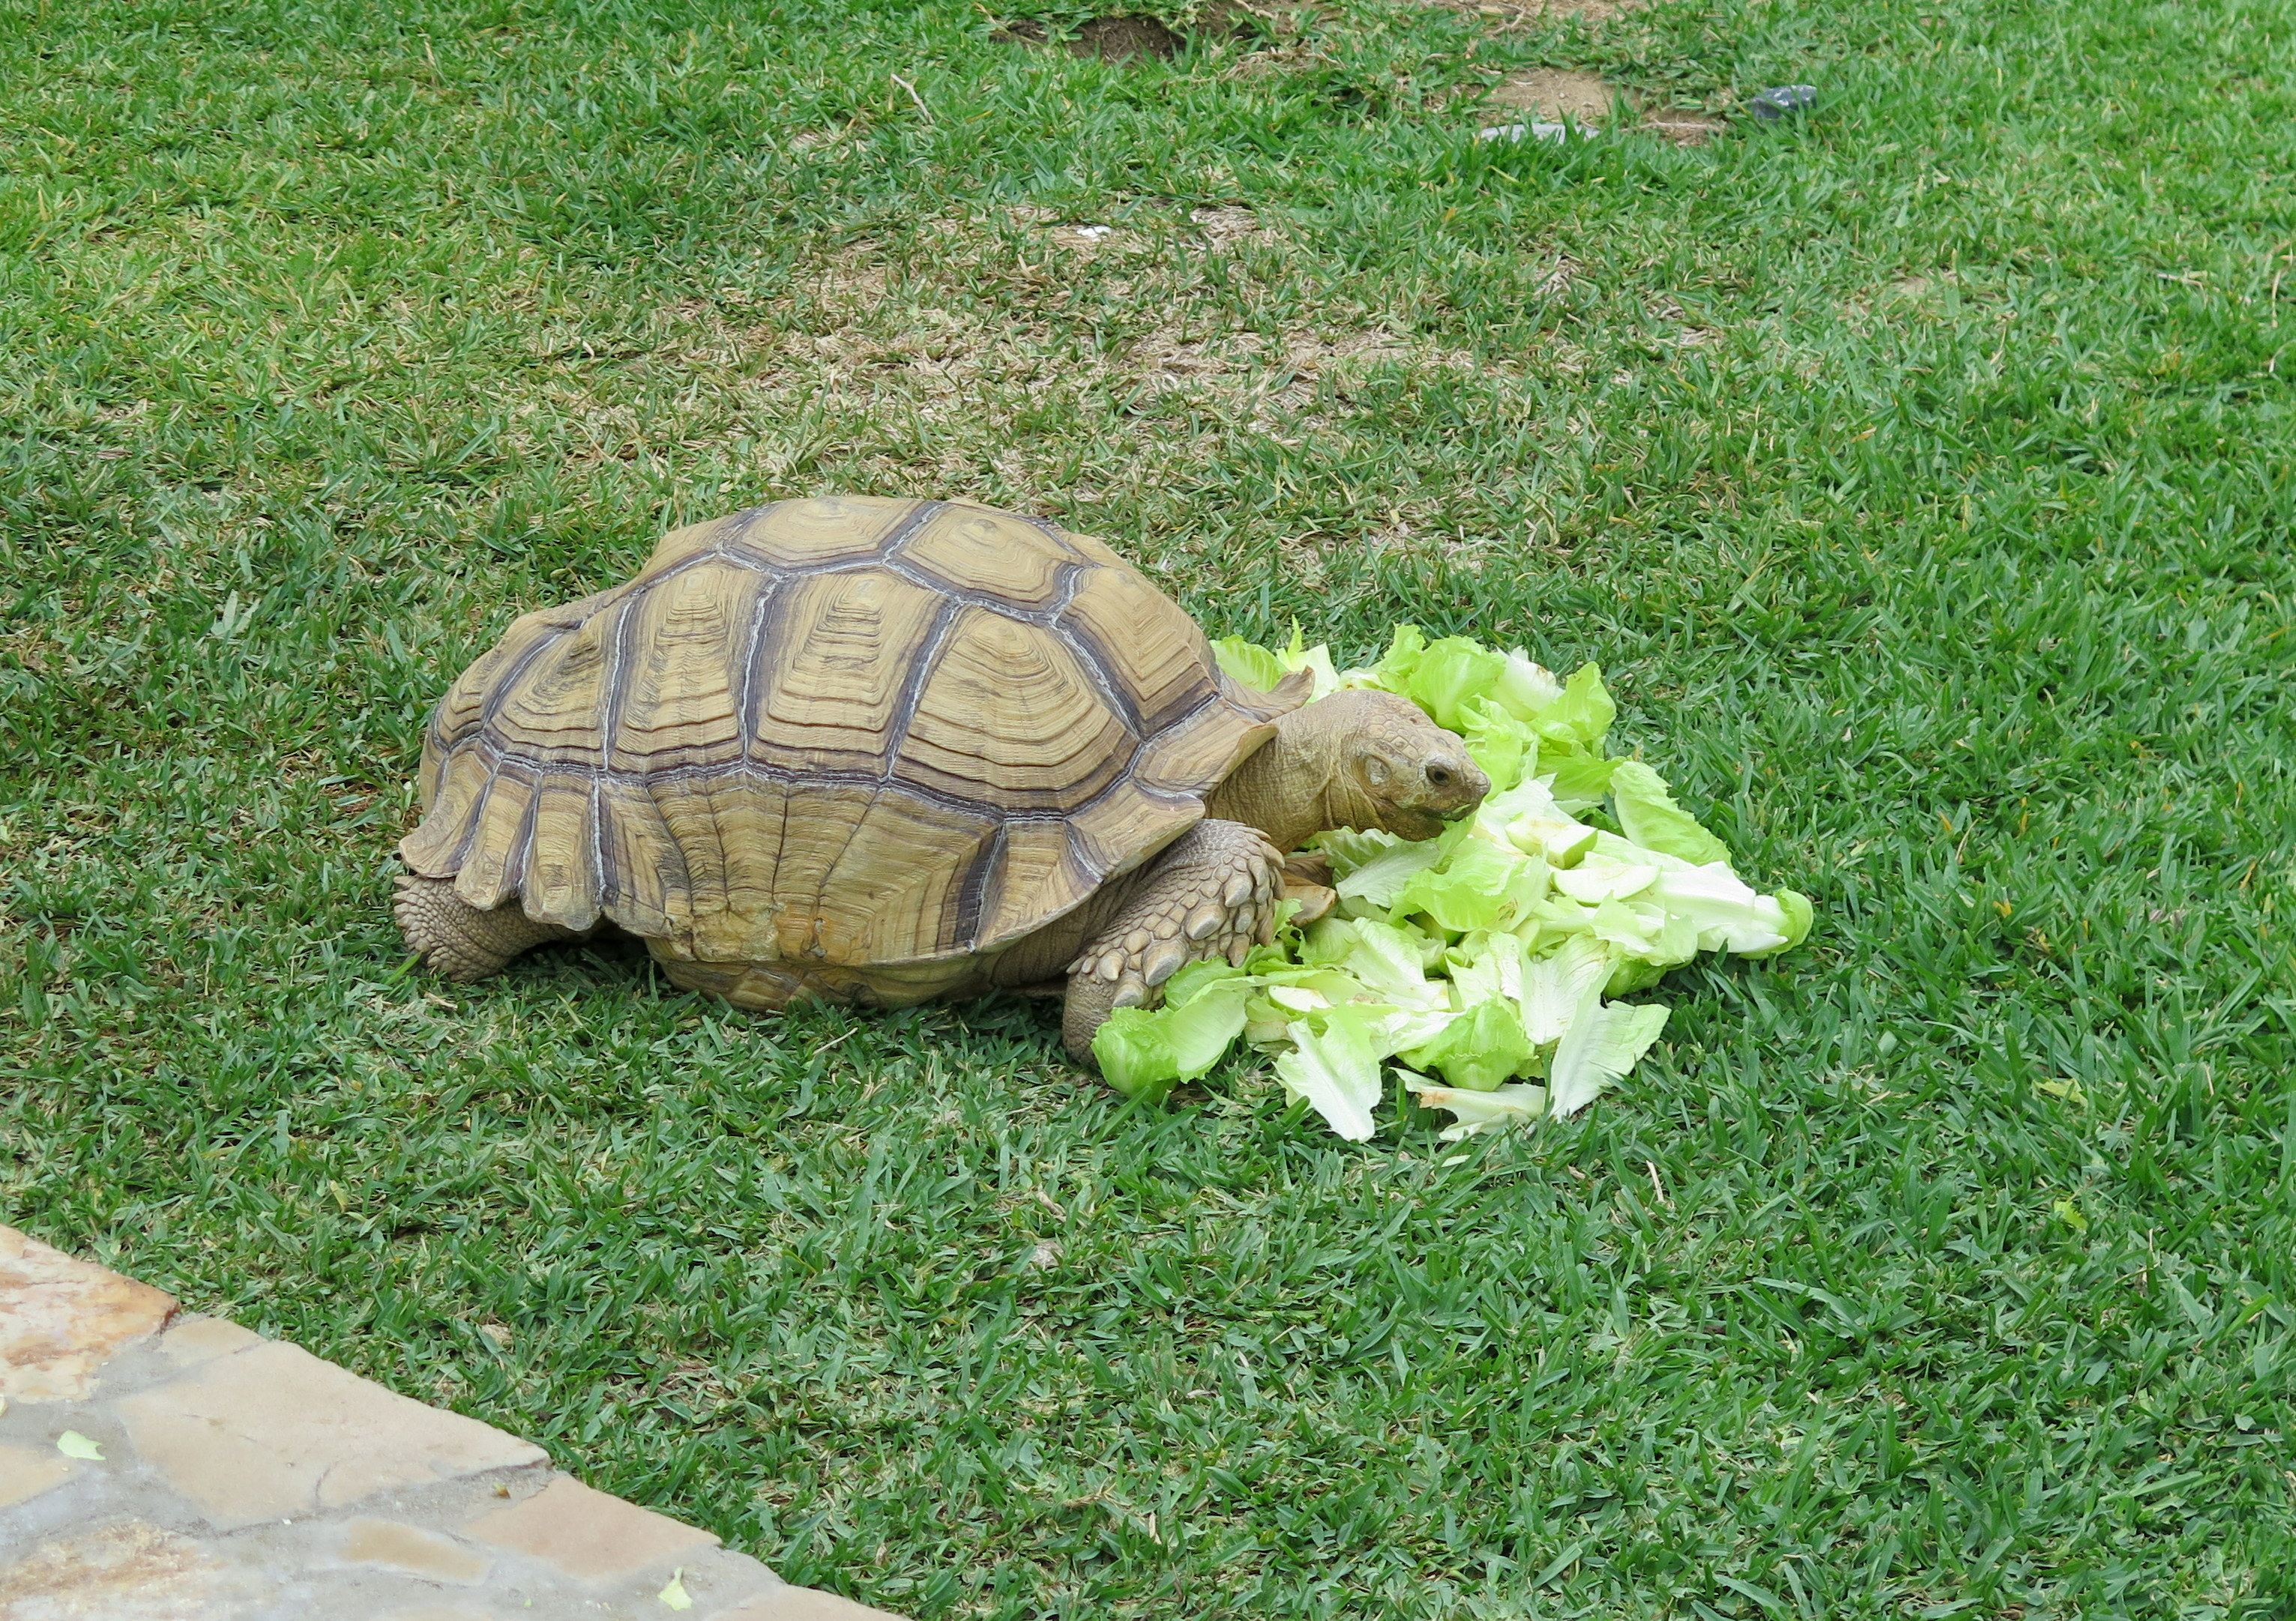 Priscilla the tortoise is a key staff member at One&Only Palmilla. Definitely a big attraction for the kids.